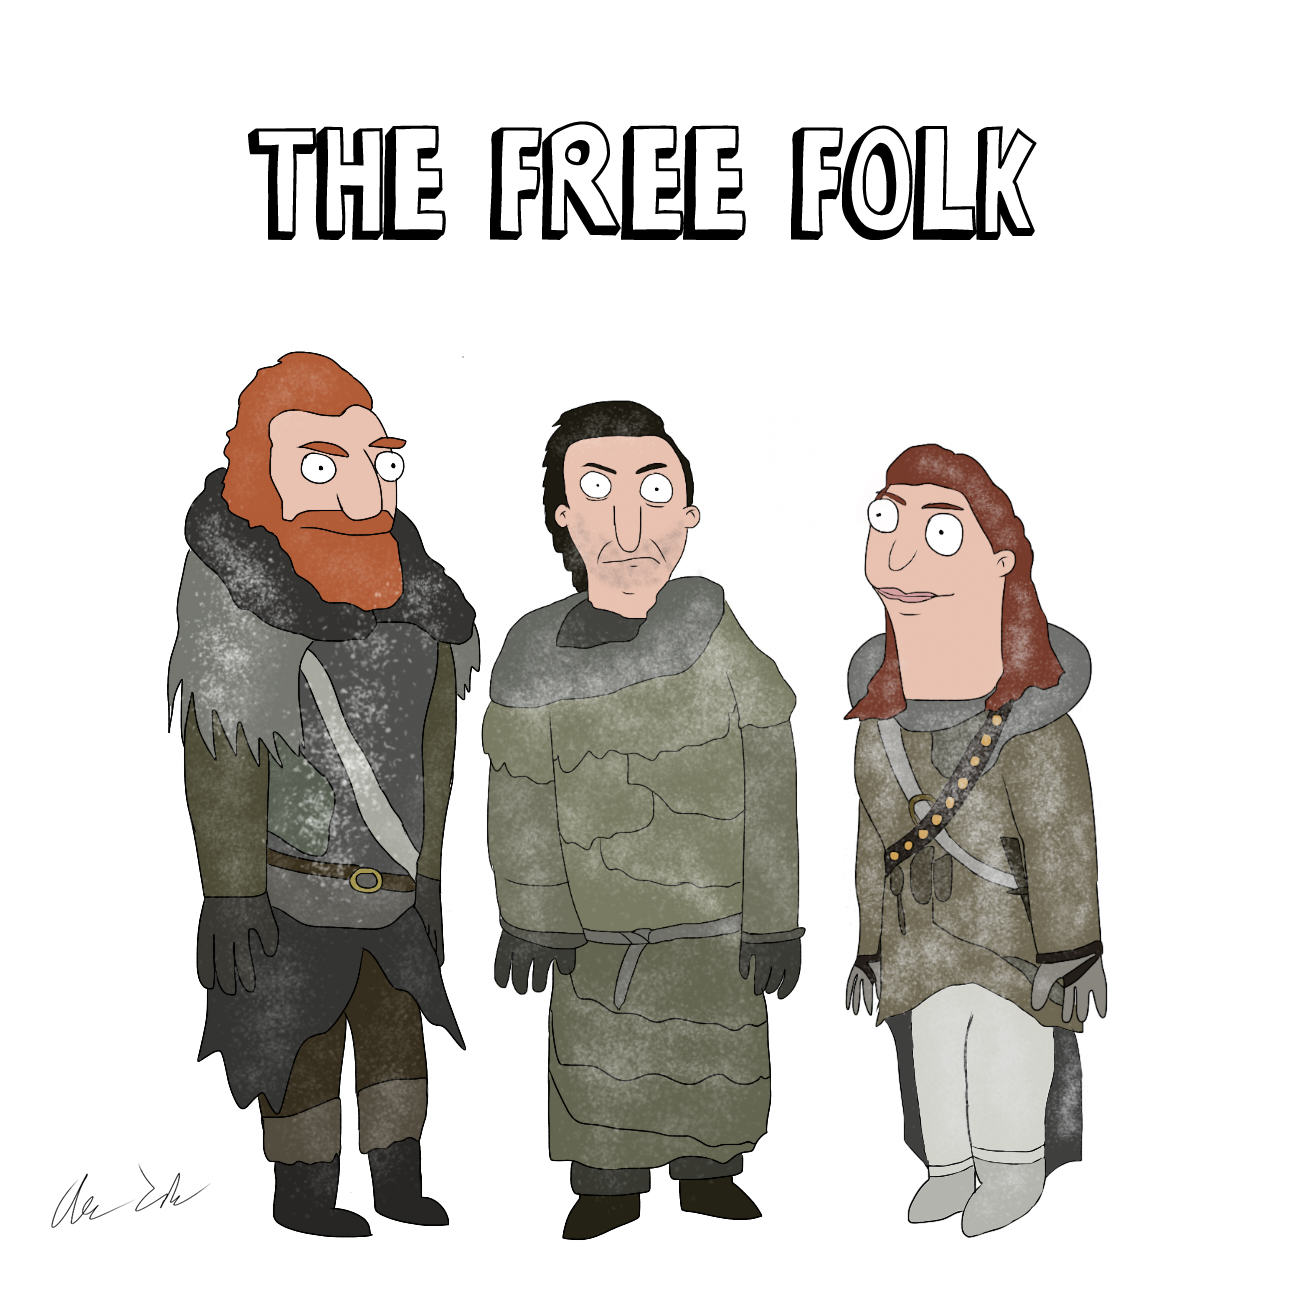 Someone Has Drawn Game Of Thrones Characters In The Style Of Bobs Burgers UNILAD house44